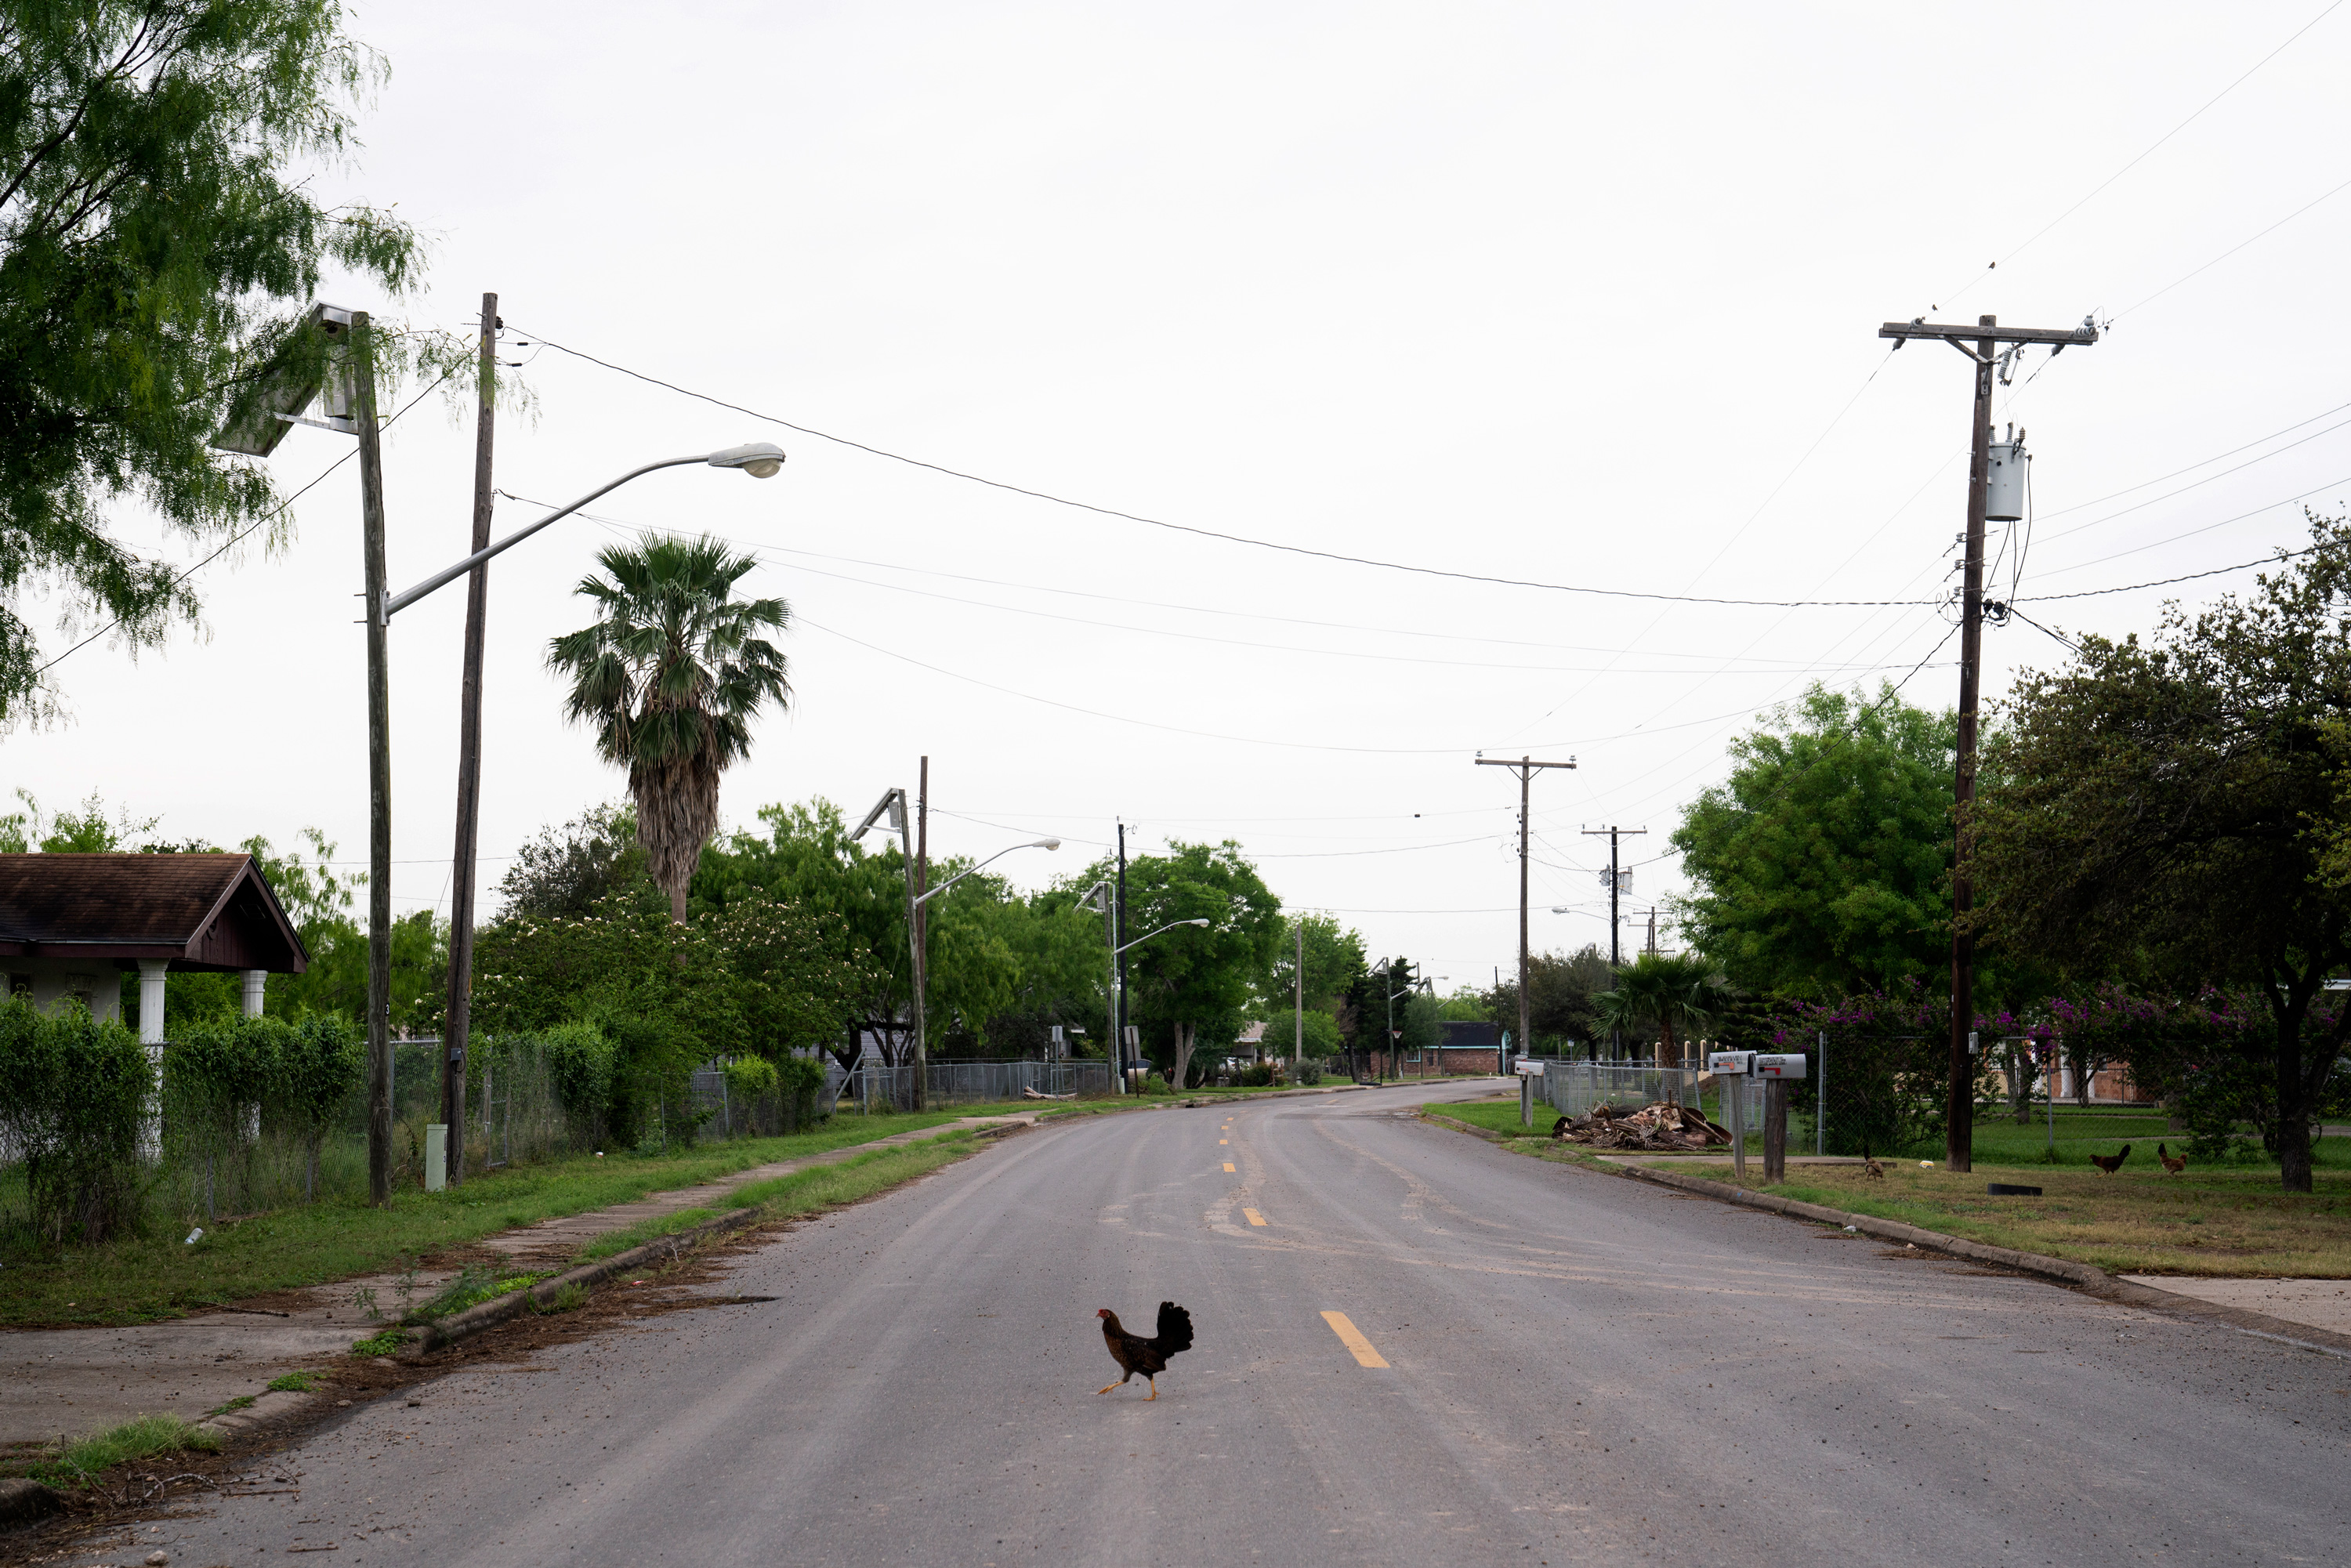 The City of Granjeno is an area that is a historical anthropological Carrizo settlement.Photo: Verónica G. Cárdenas for The Intercept